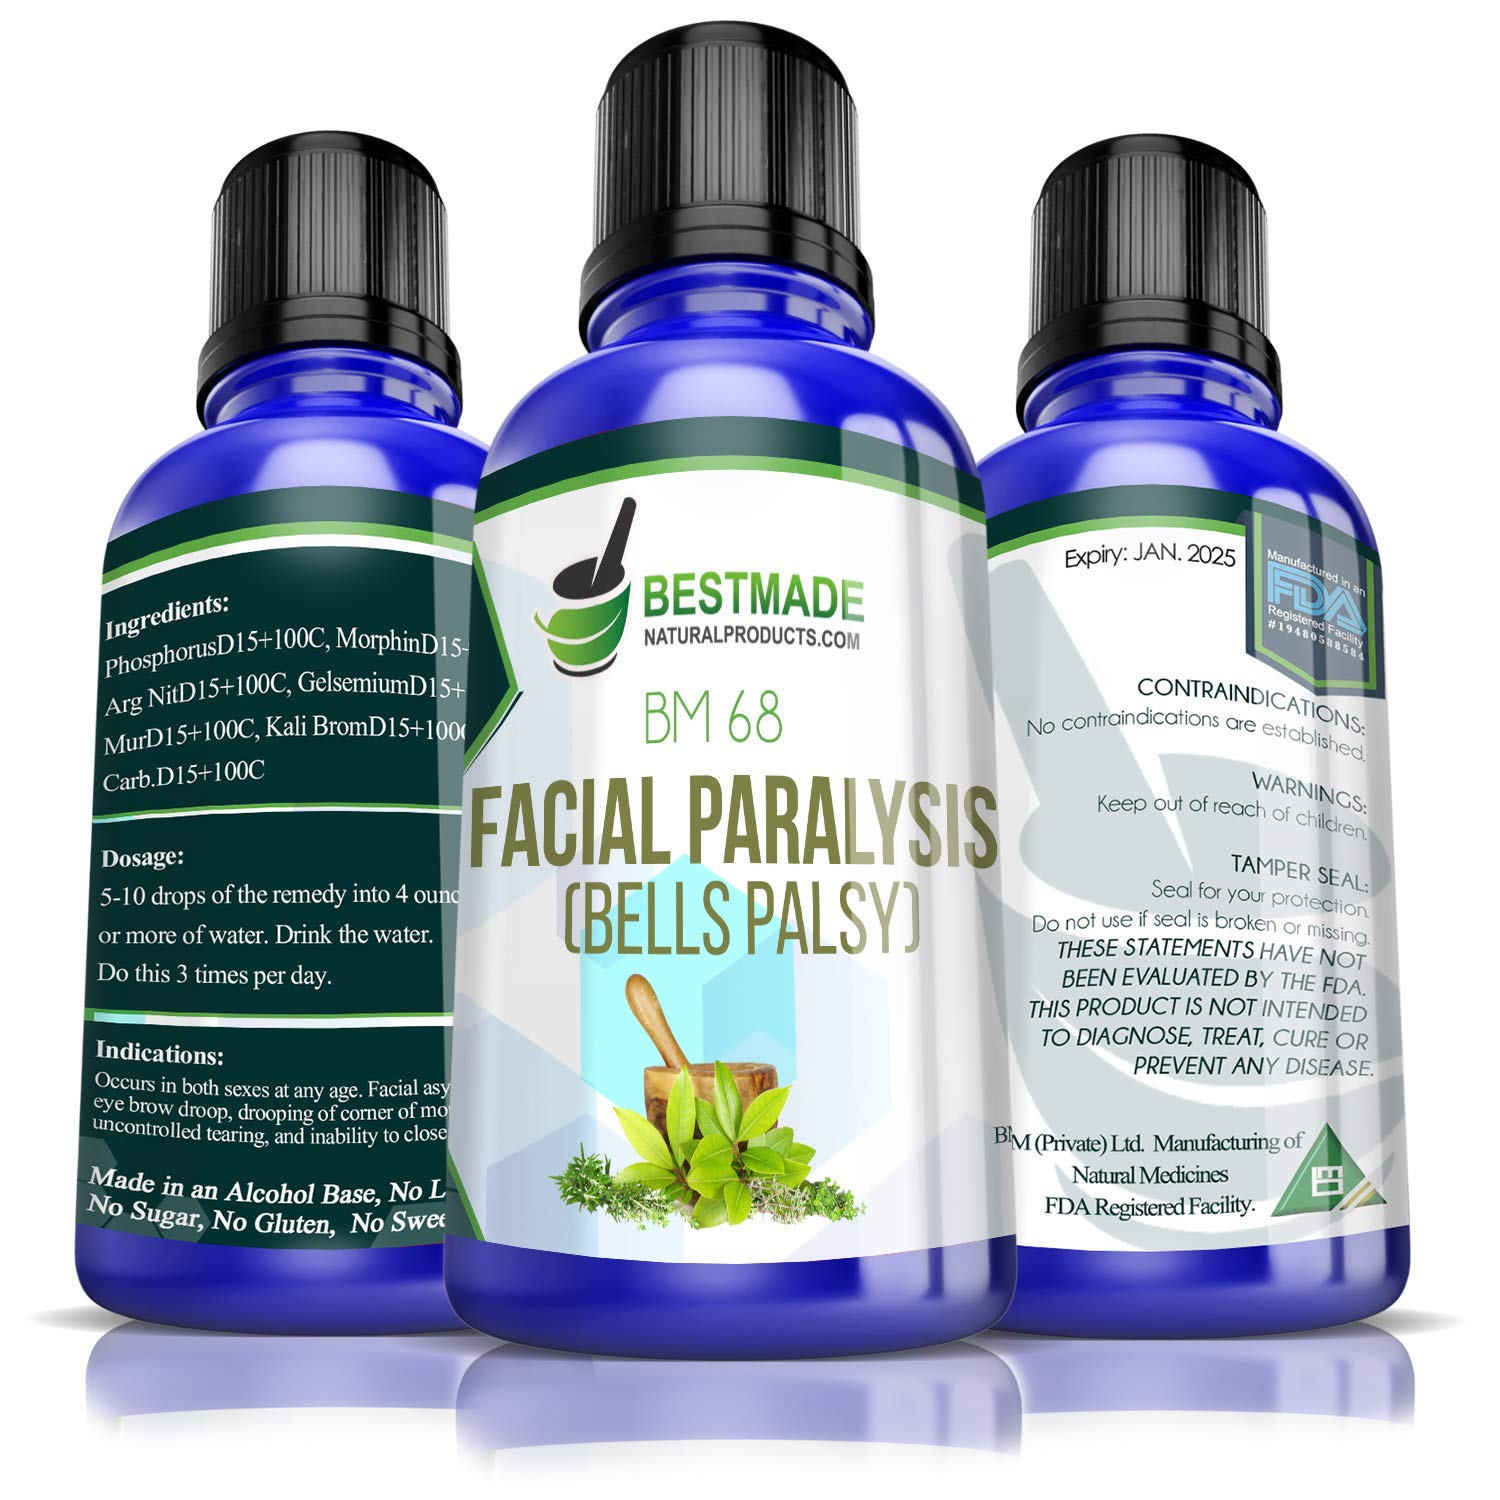 Facial Paralysis (Bell's Palsy) BM68 15mL, A Natural Remedy to Help with  Facial Drooping and